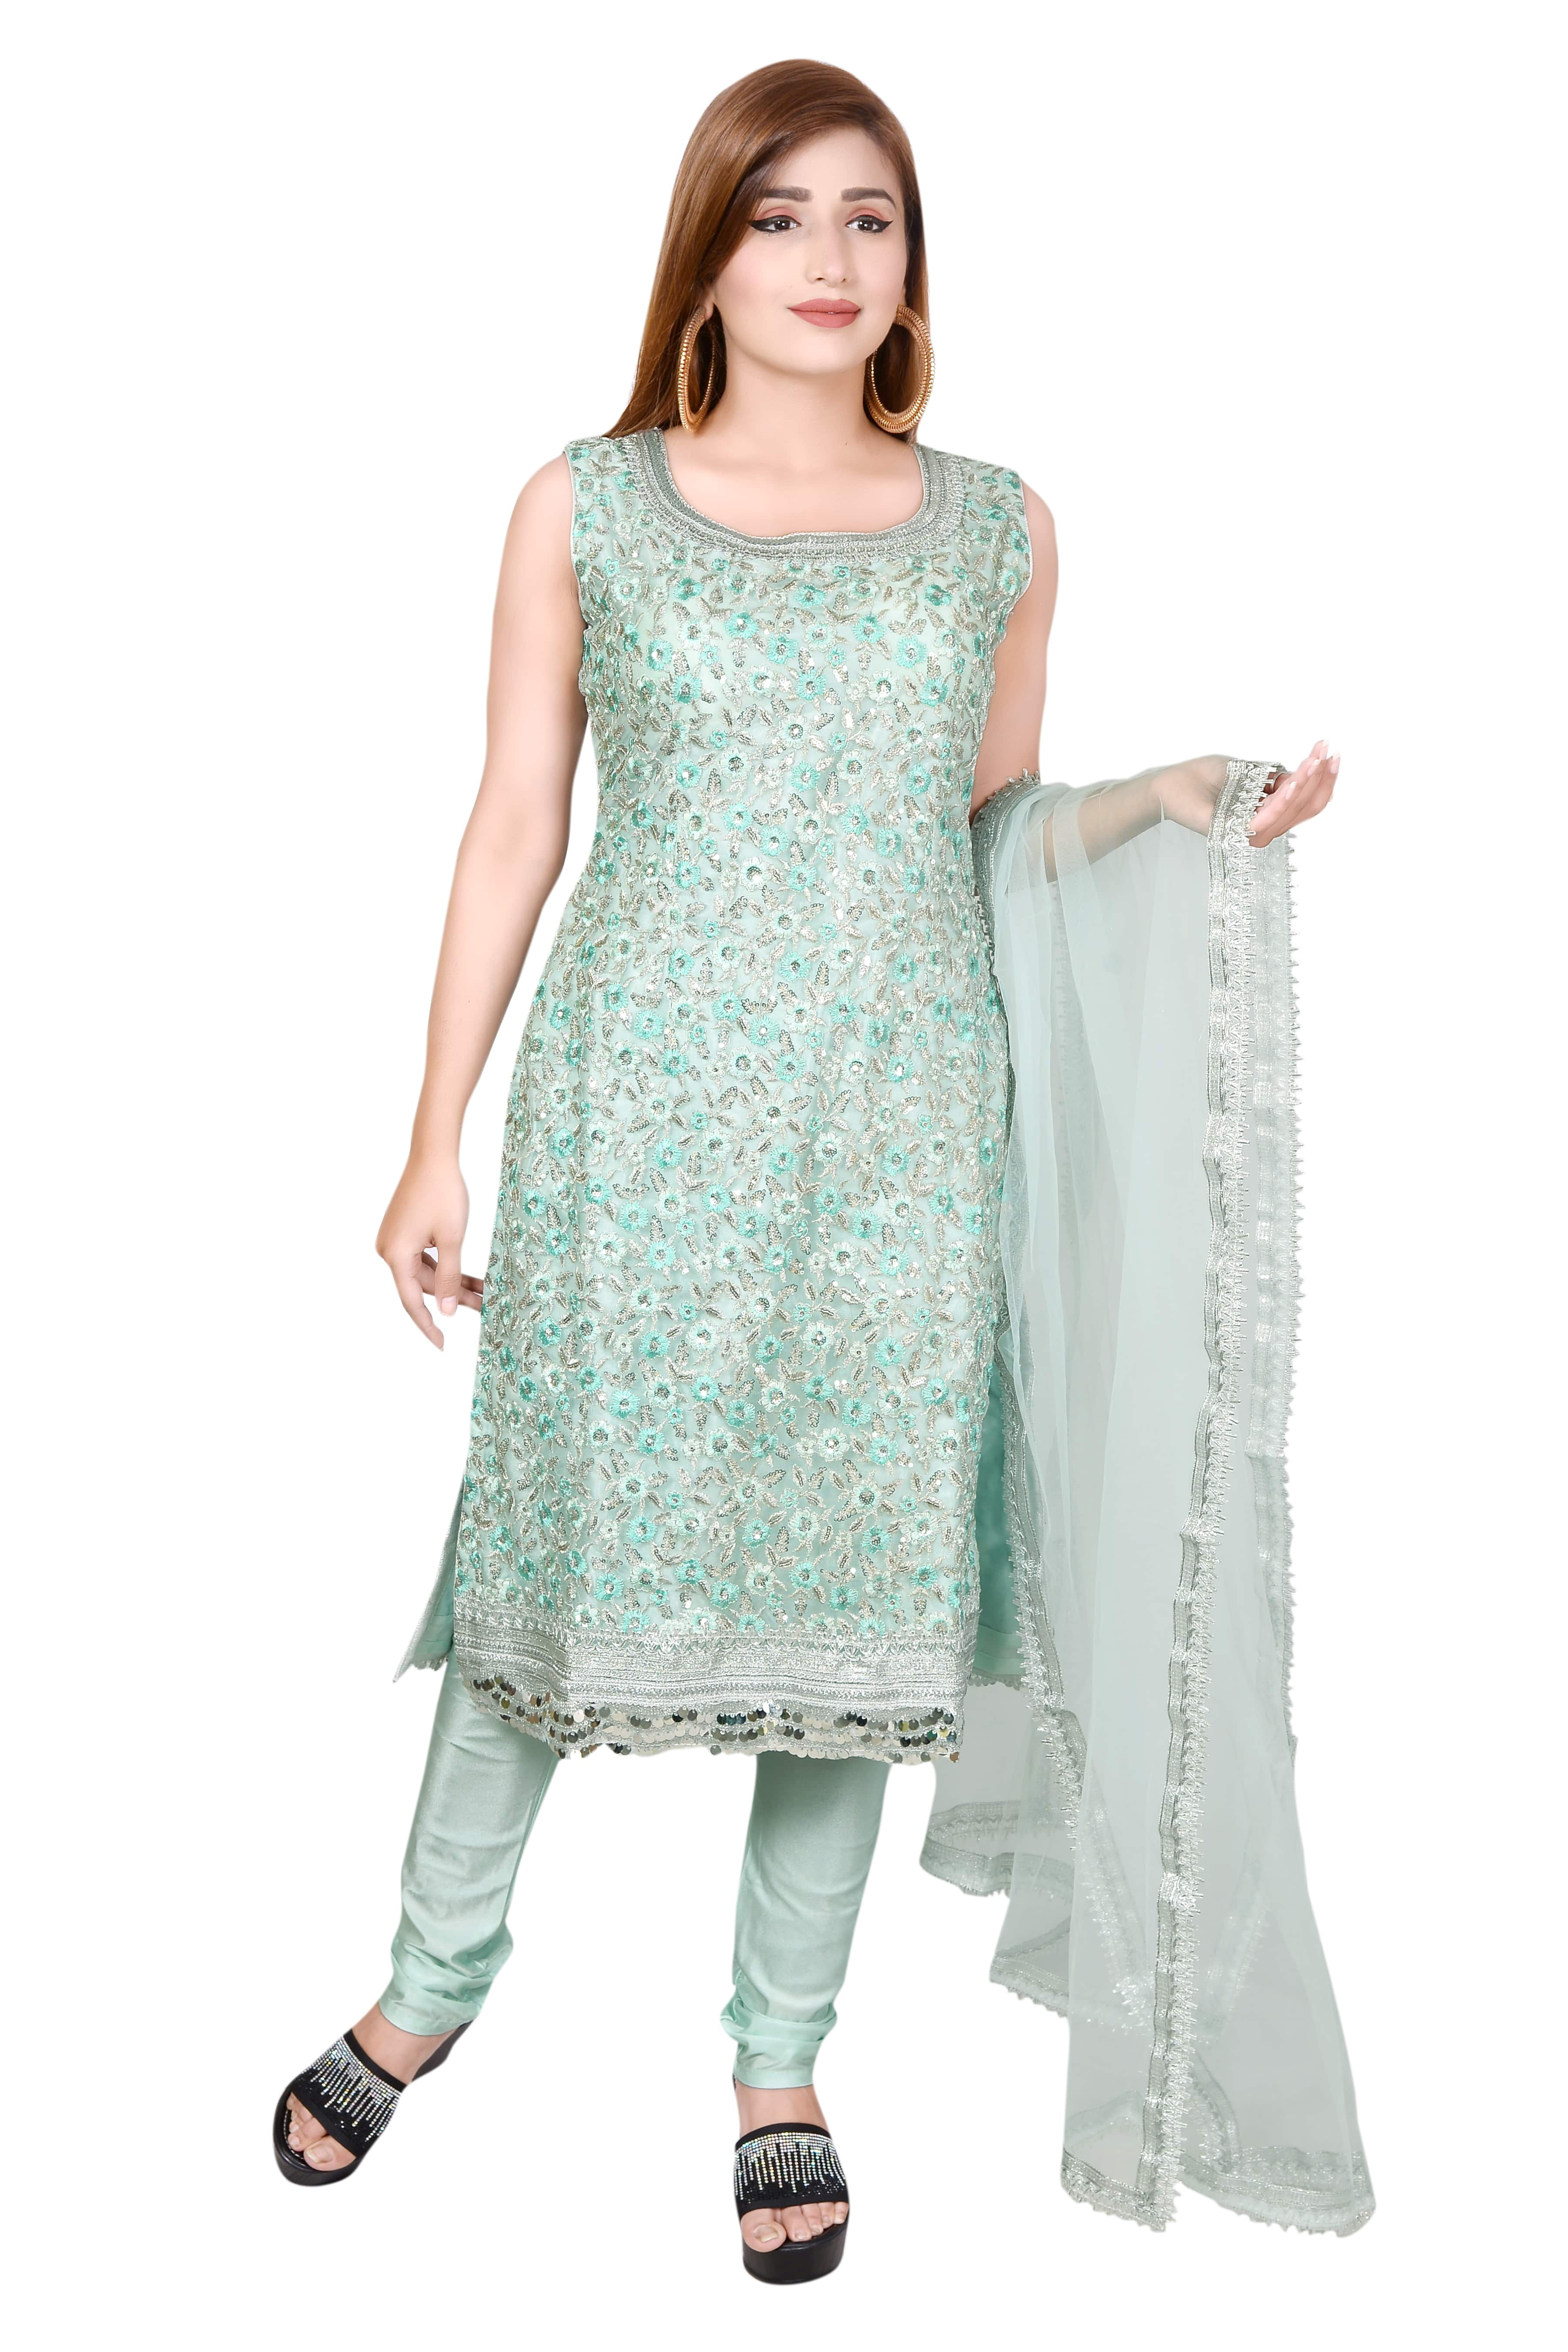 Ladies Punjabi Suits In Chandigarh